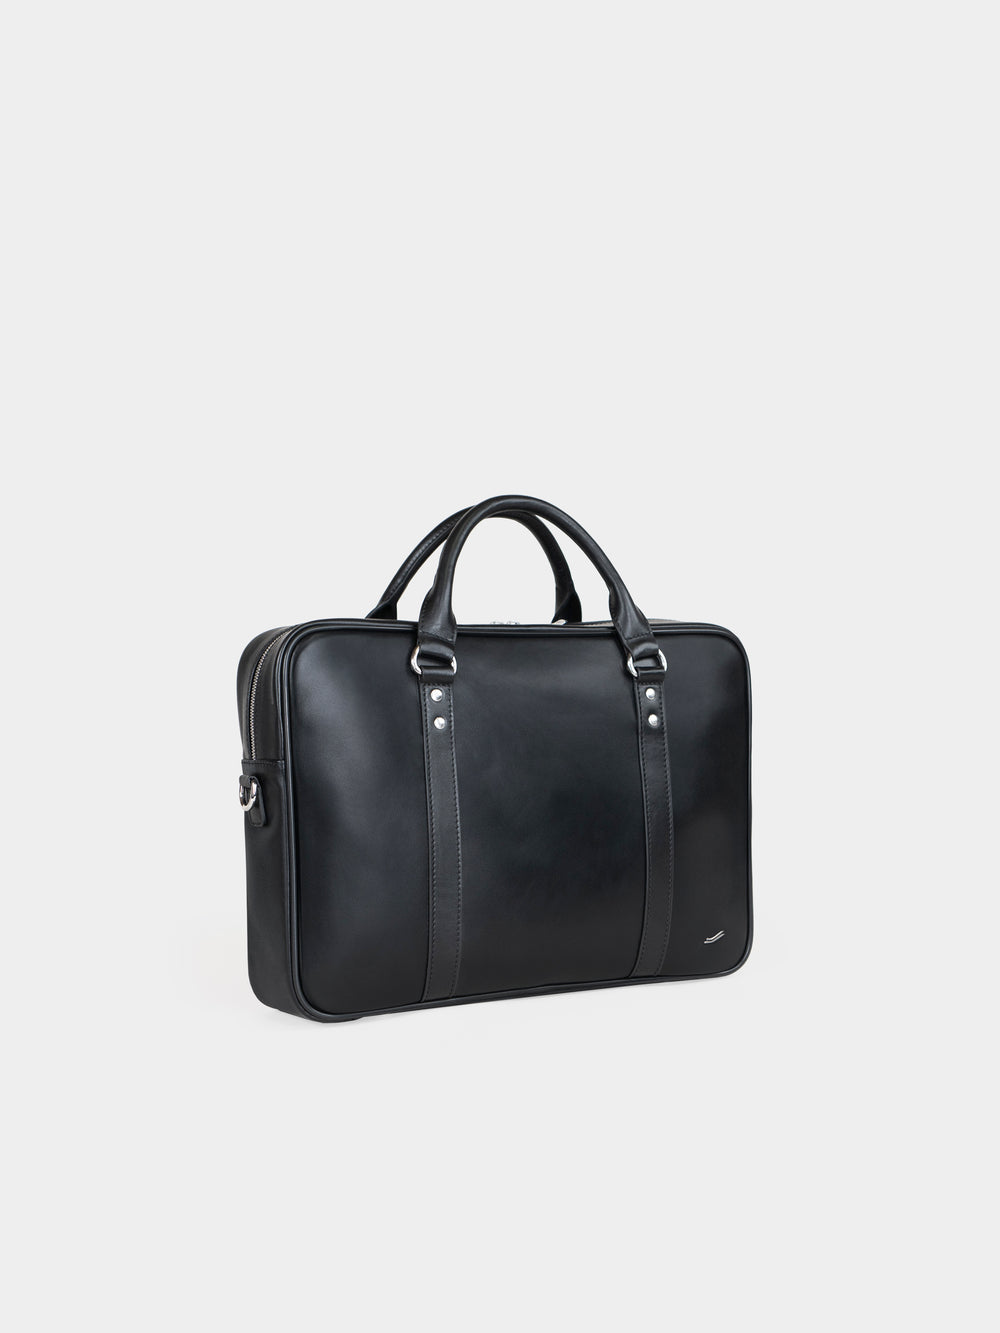 f25 briefcase italian black leather